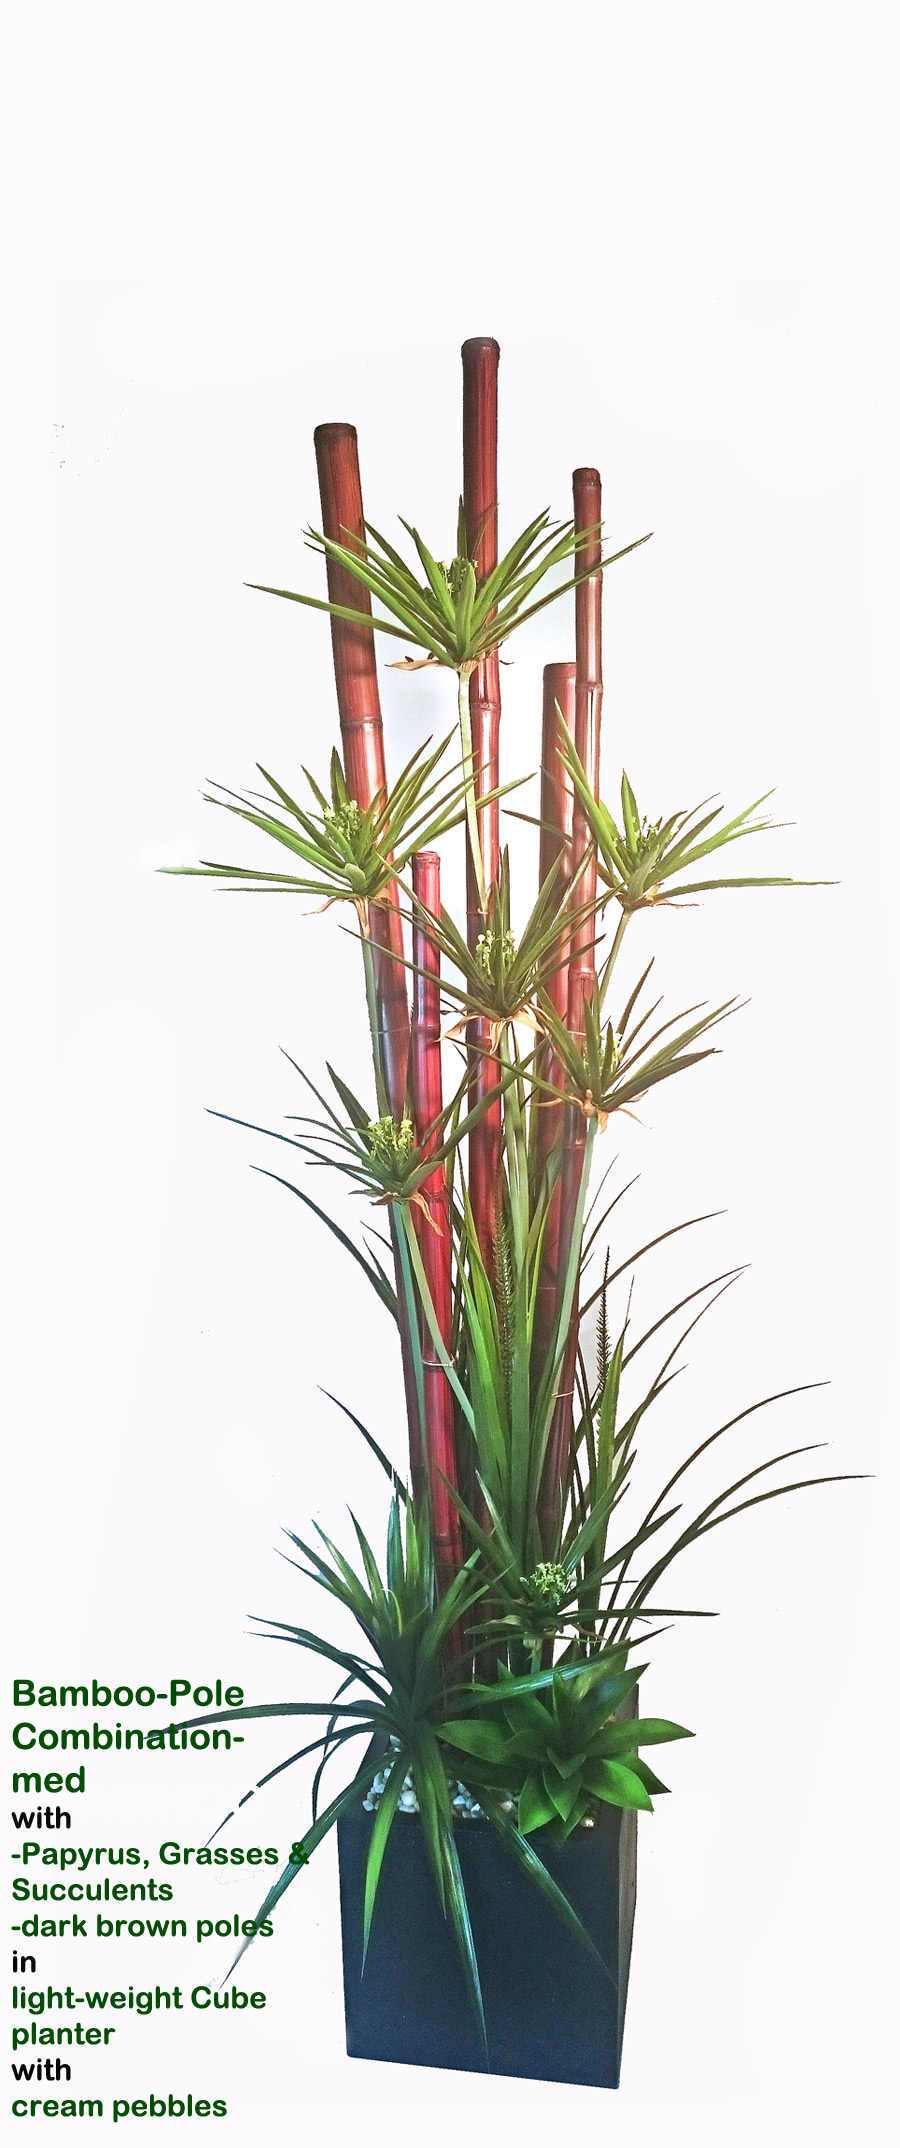 Articial Plants - Bamboo-Pole Combination- 2.1M Papyrus in light-planter